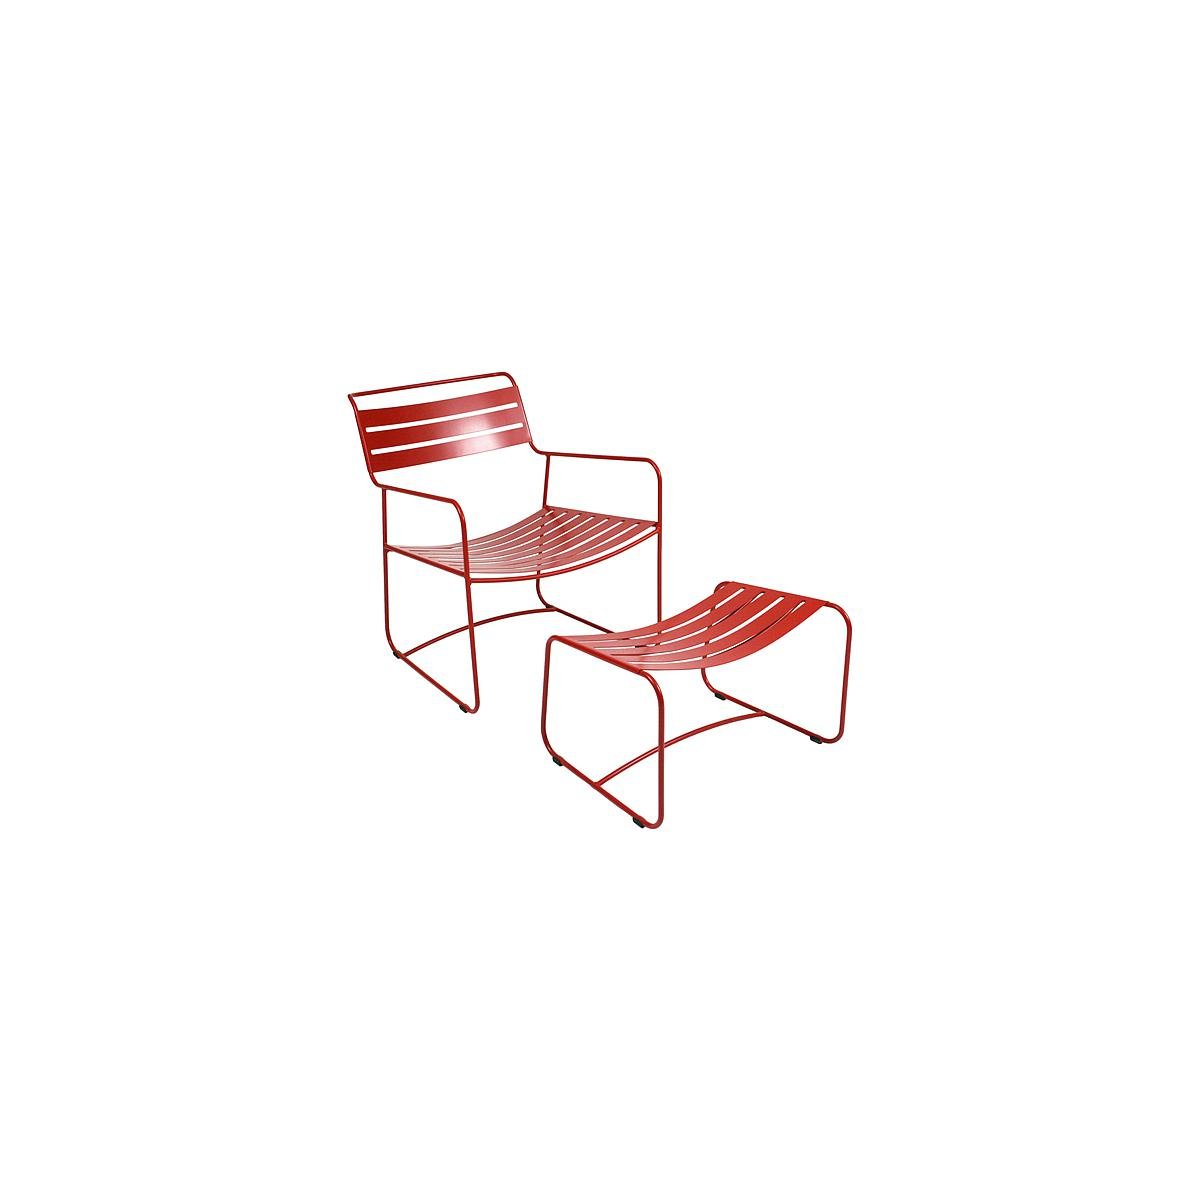 SURPRISING by Fermob Fauteuil + repose pied Rouge coquelicot